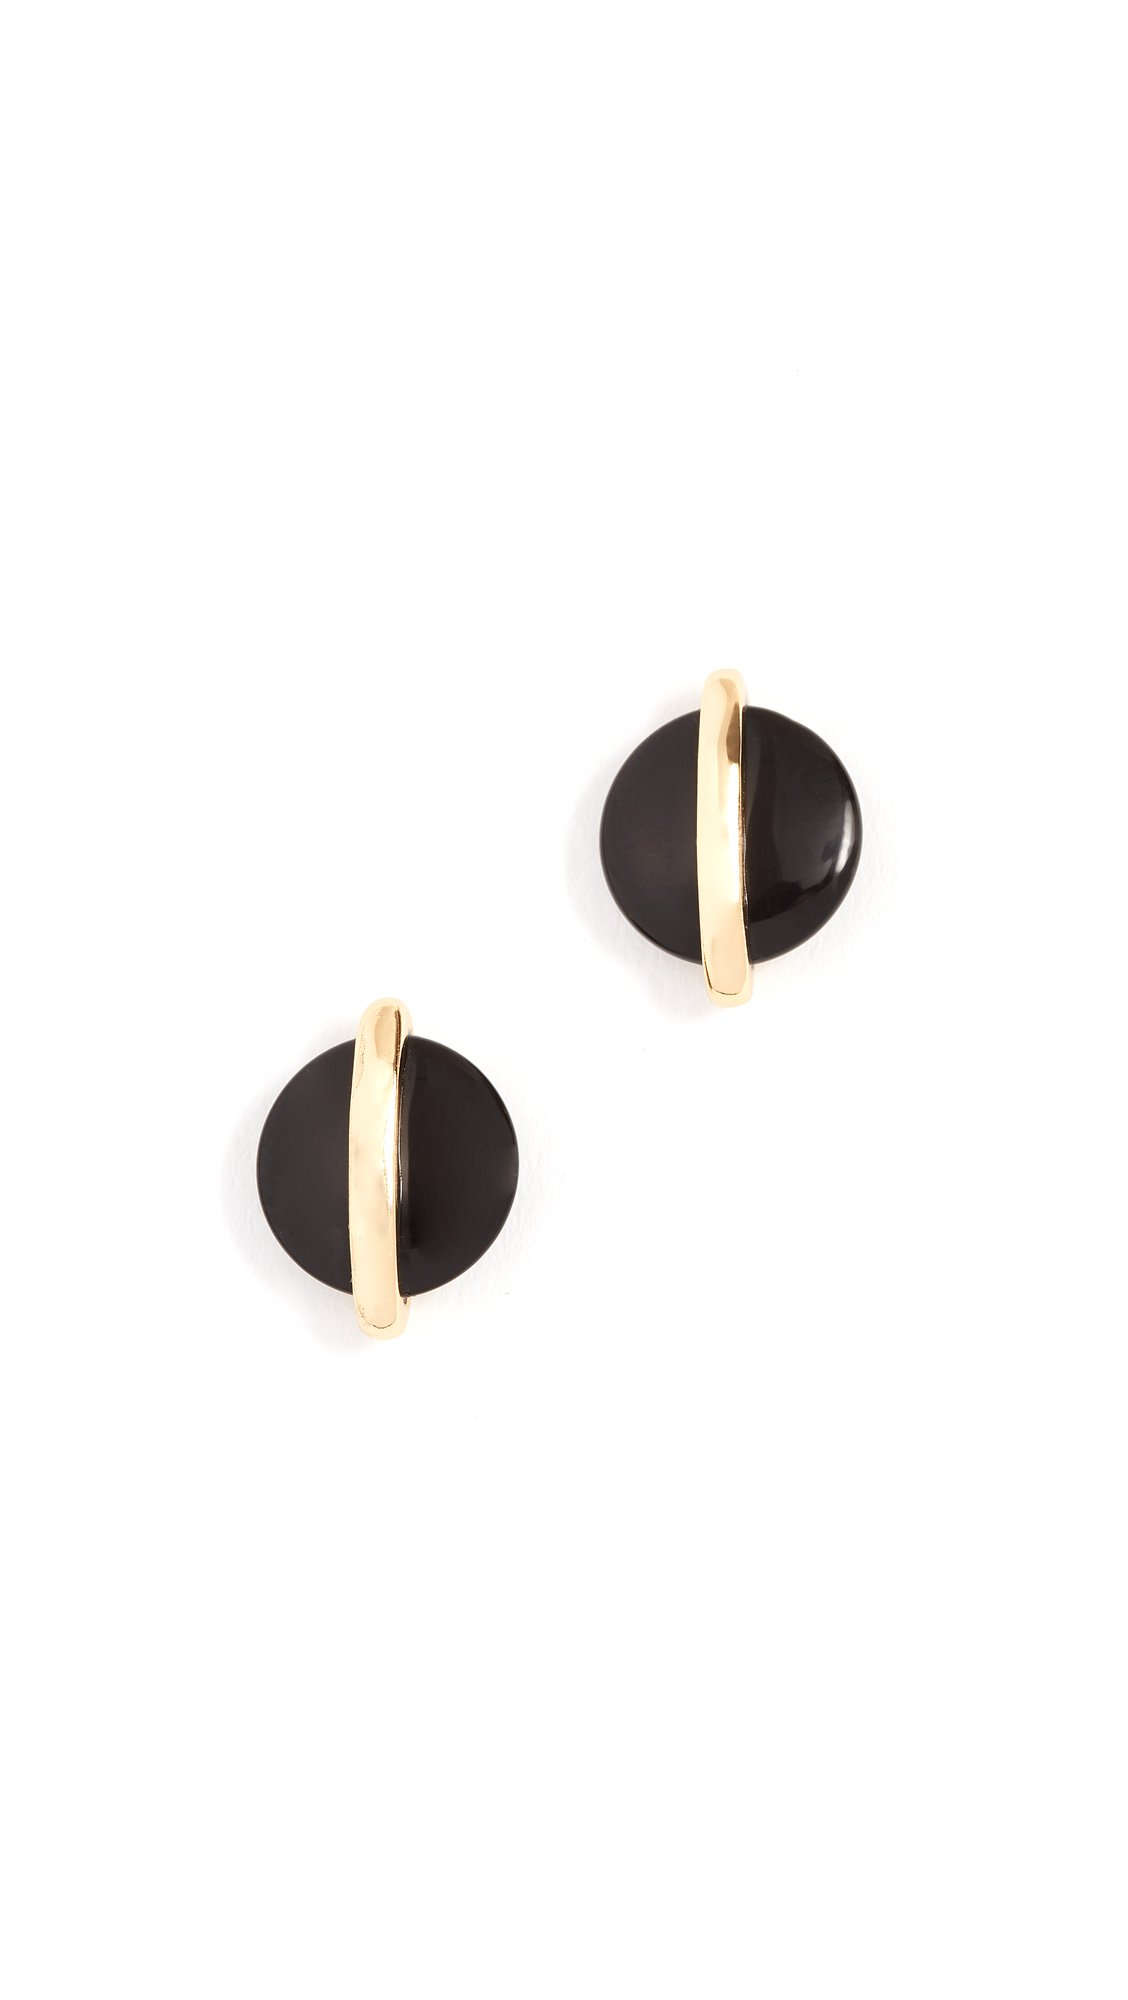 Gorjana Women's Brinn Studs, Black Onyx/Yellow Gold, One Size